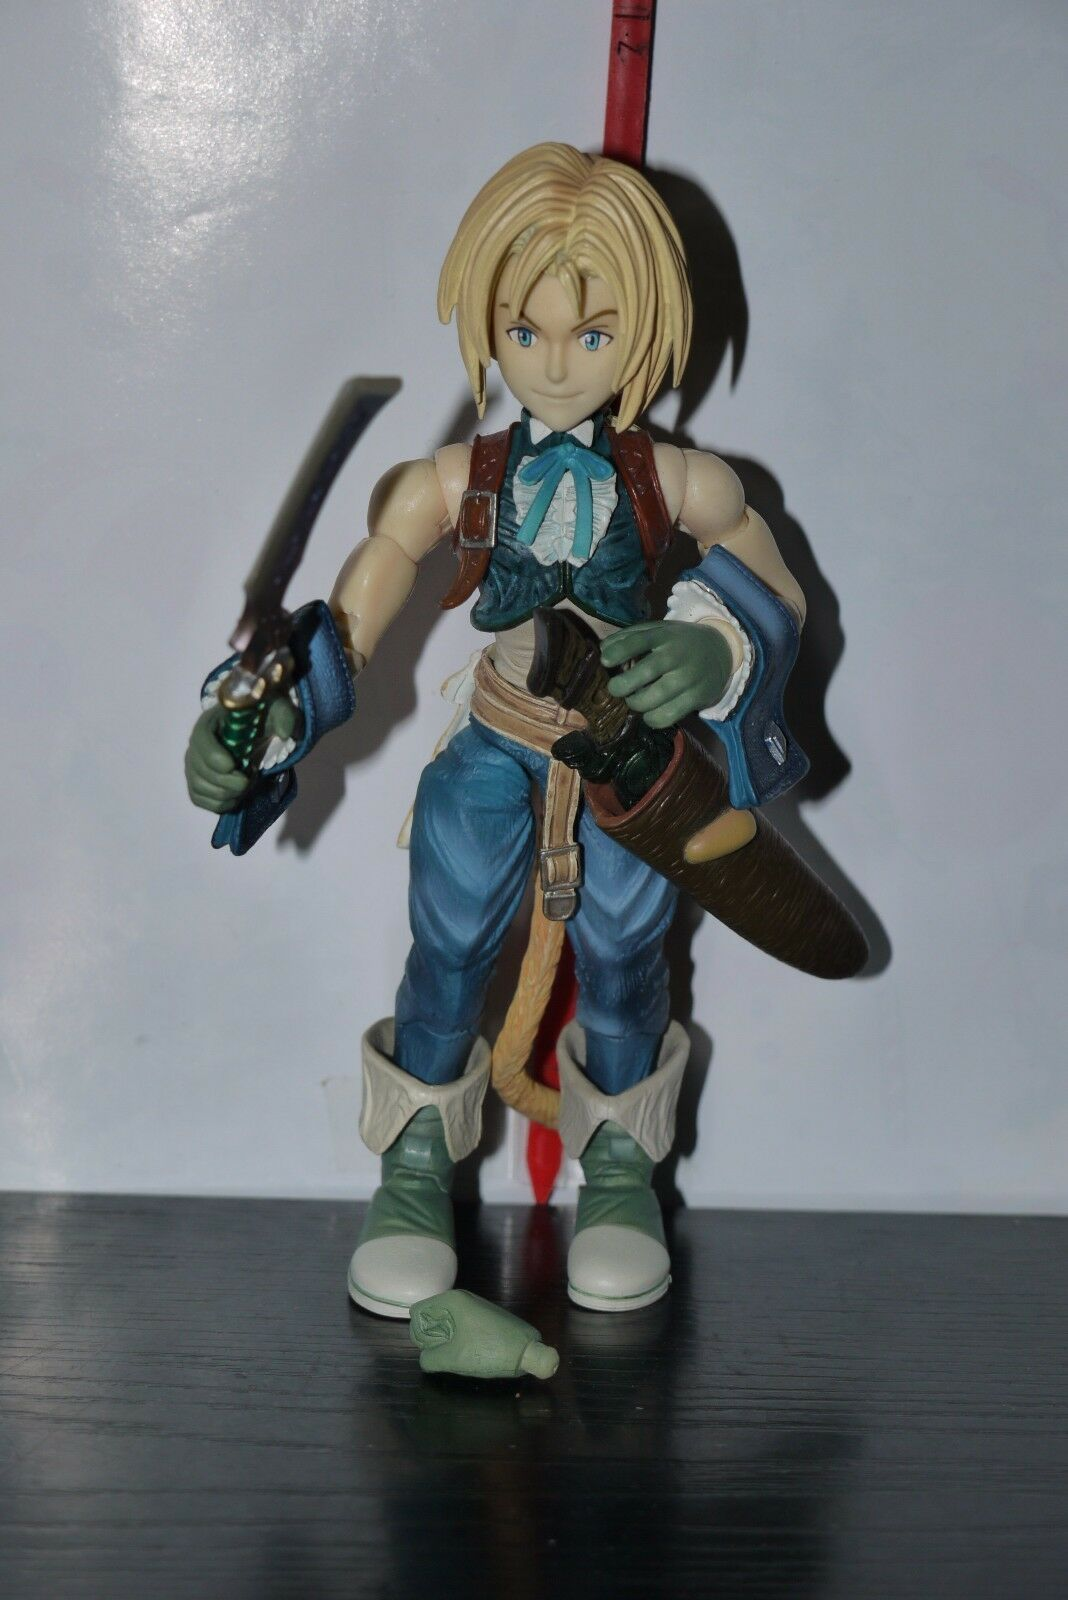 Final Fantasy IX Play Arts Zidane Tribal Figure Square Enix Enix Enix 1f8